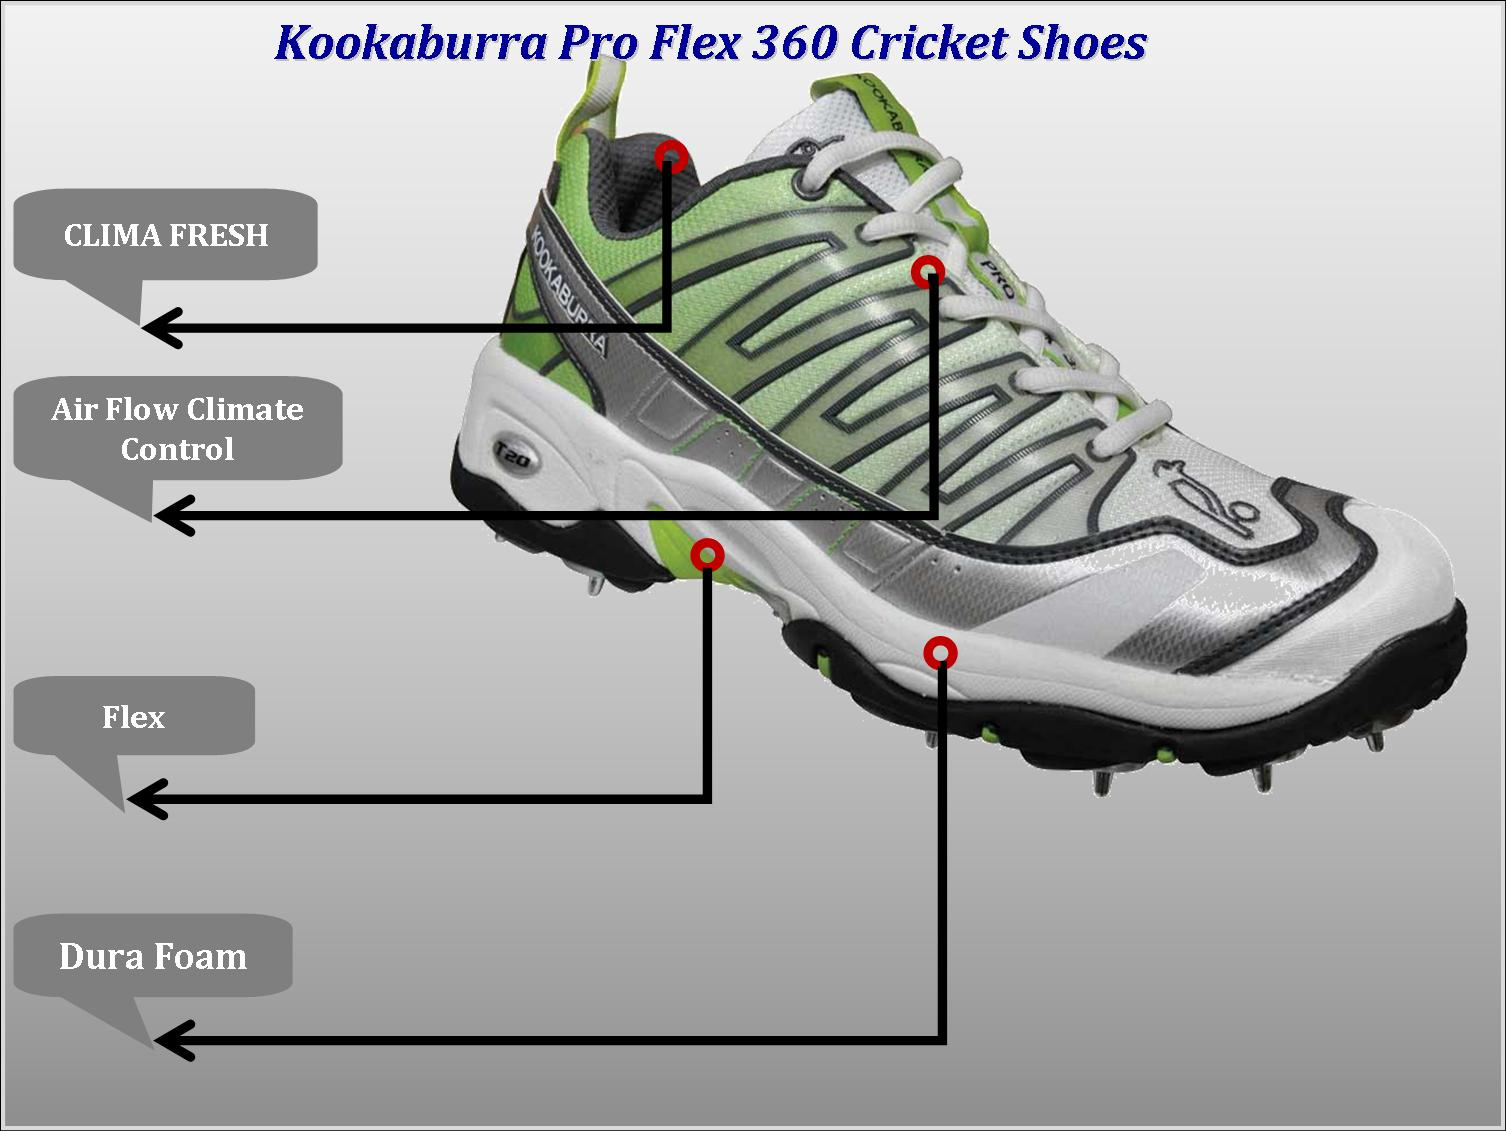 Kookaburra Cricket shoes Technology